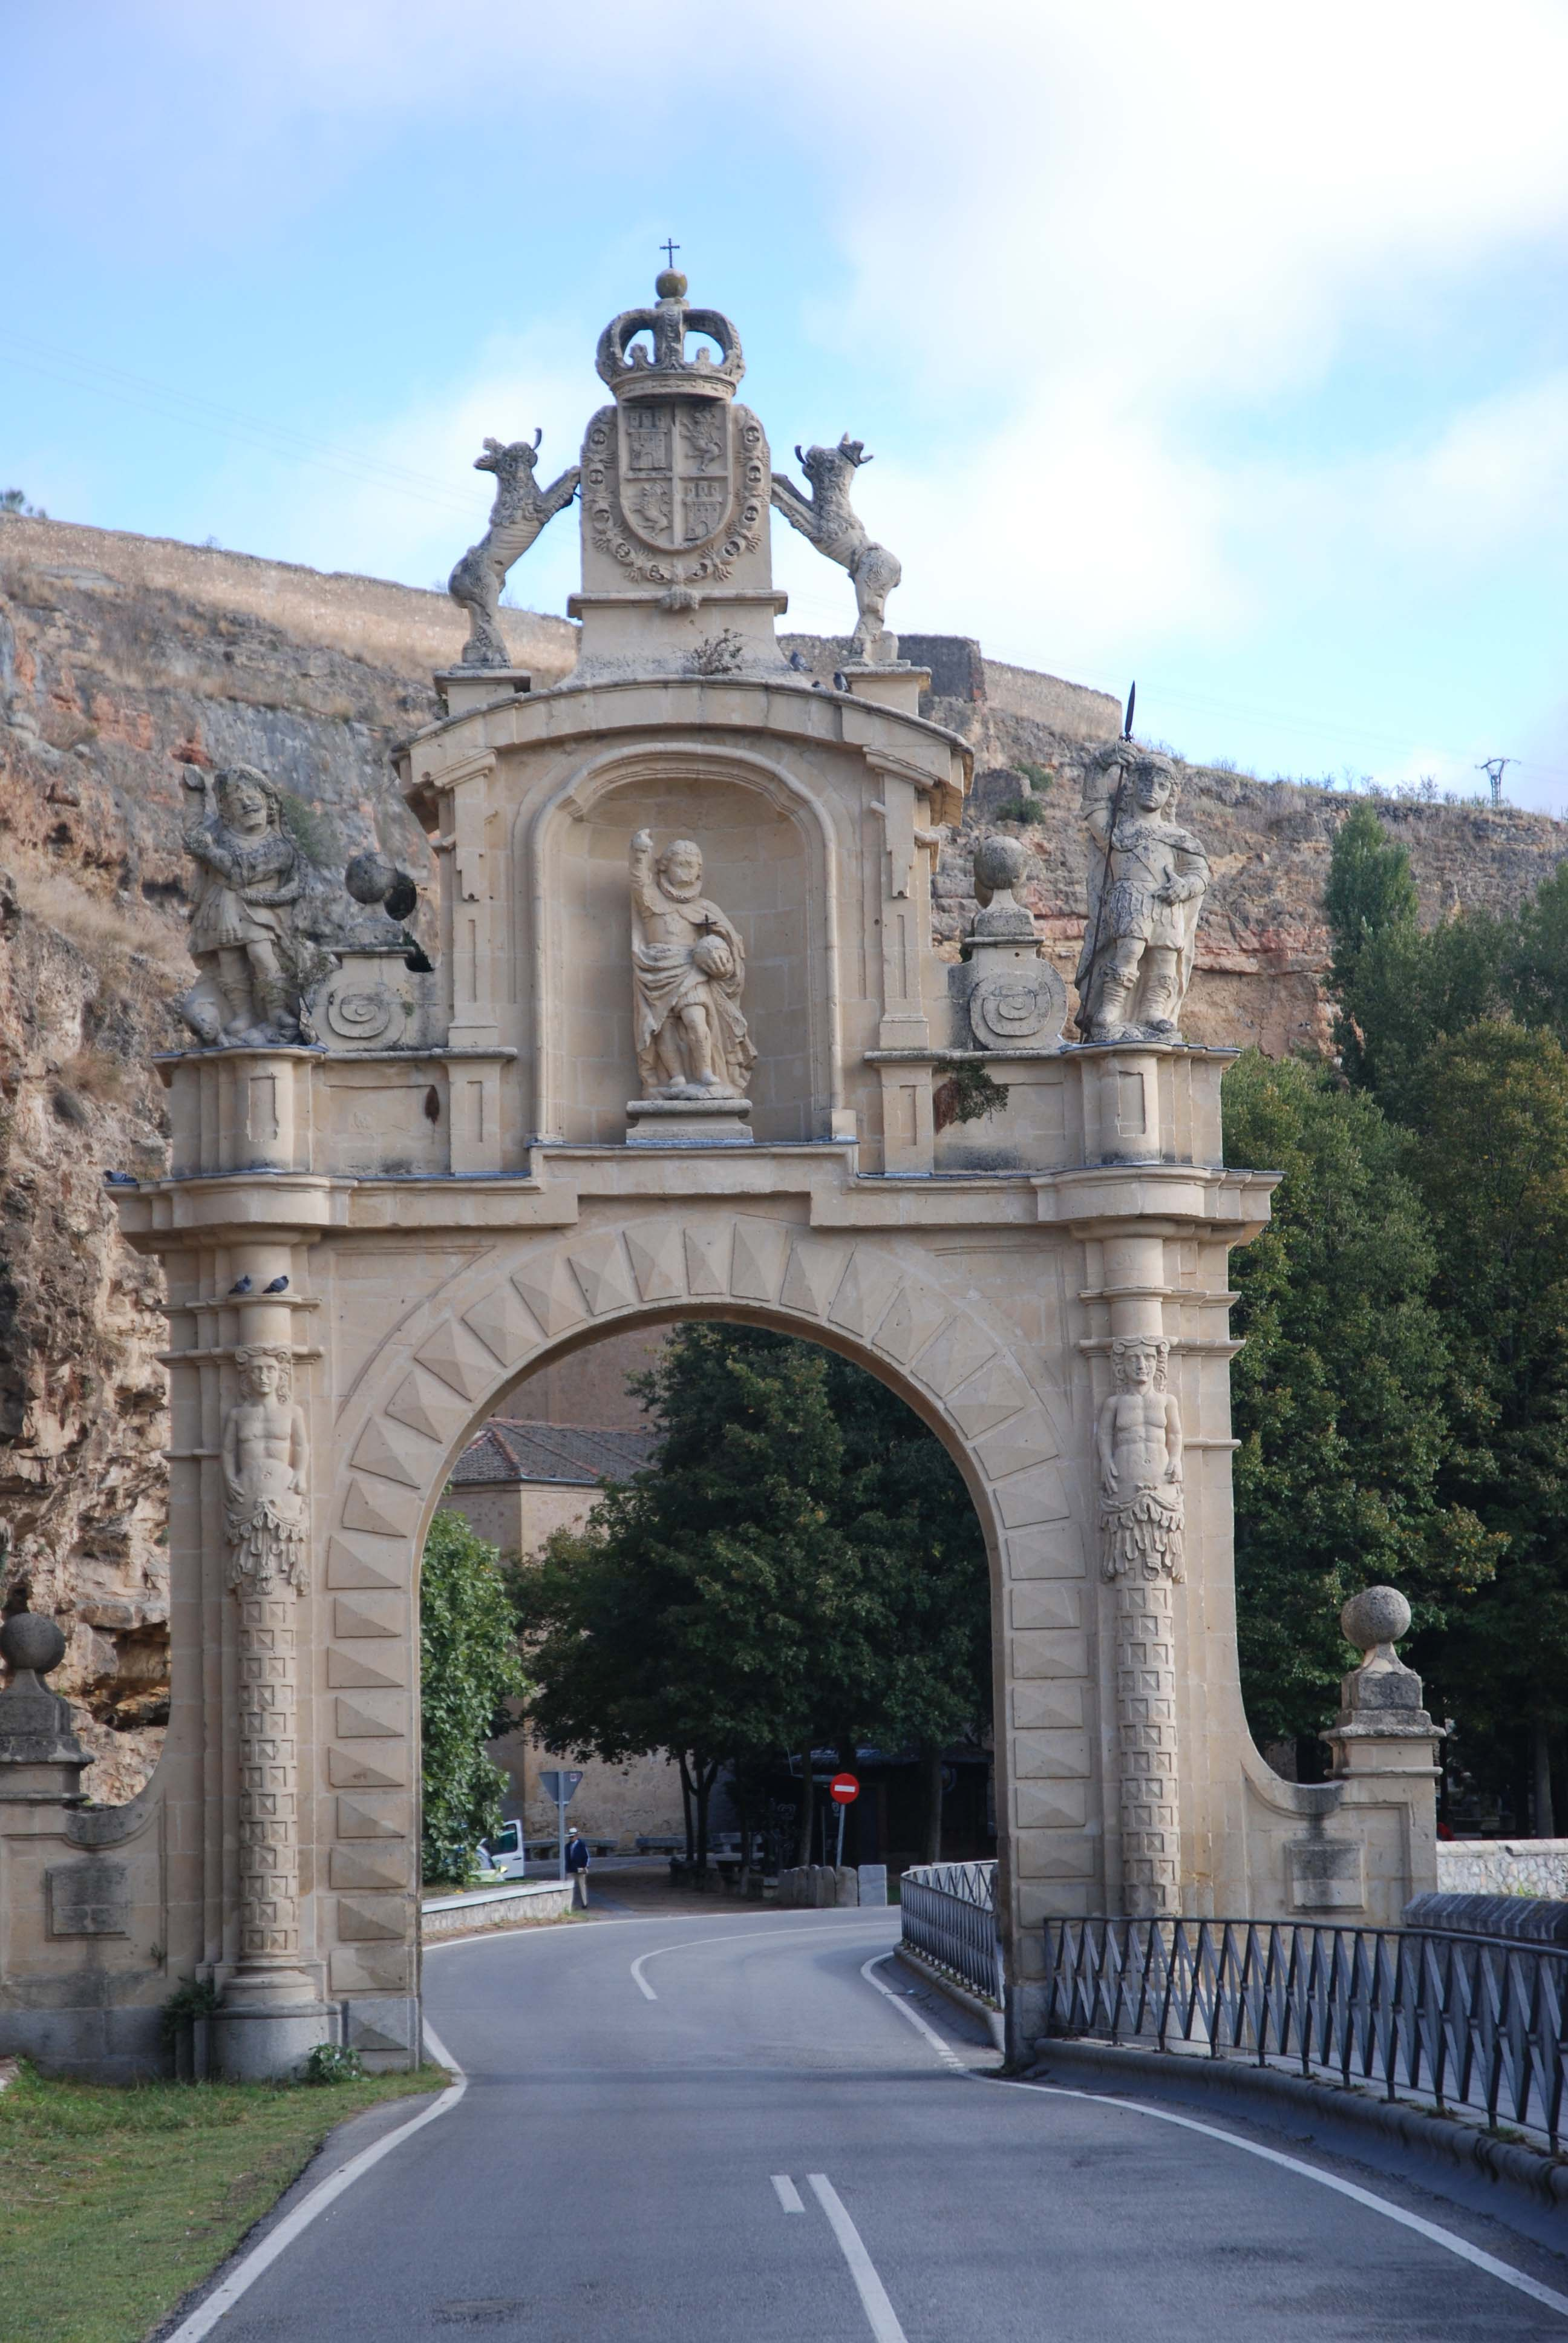 Your entry way into Segovia